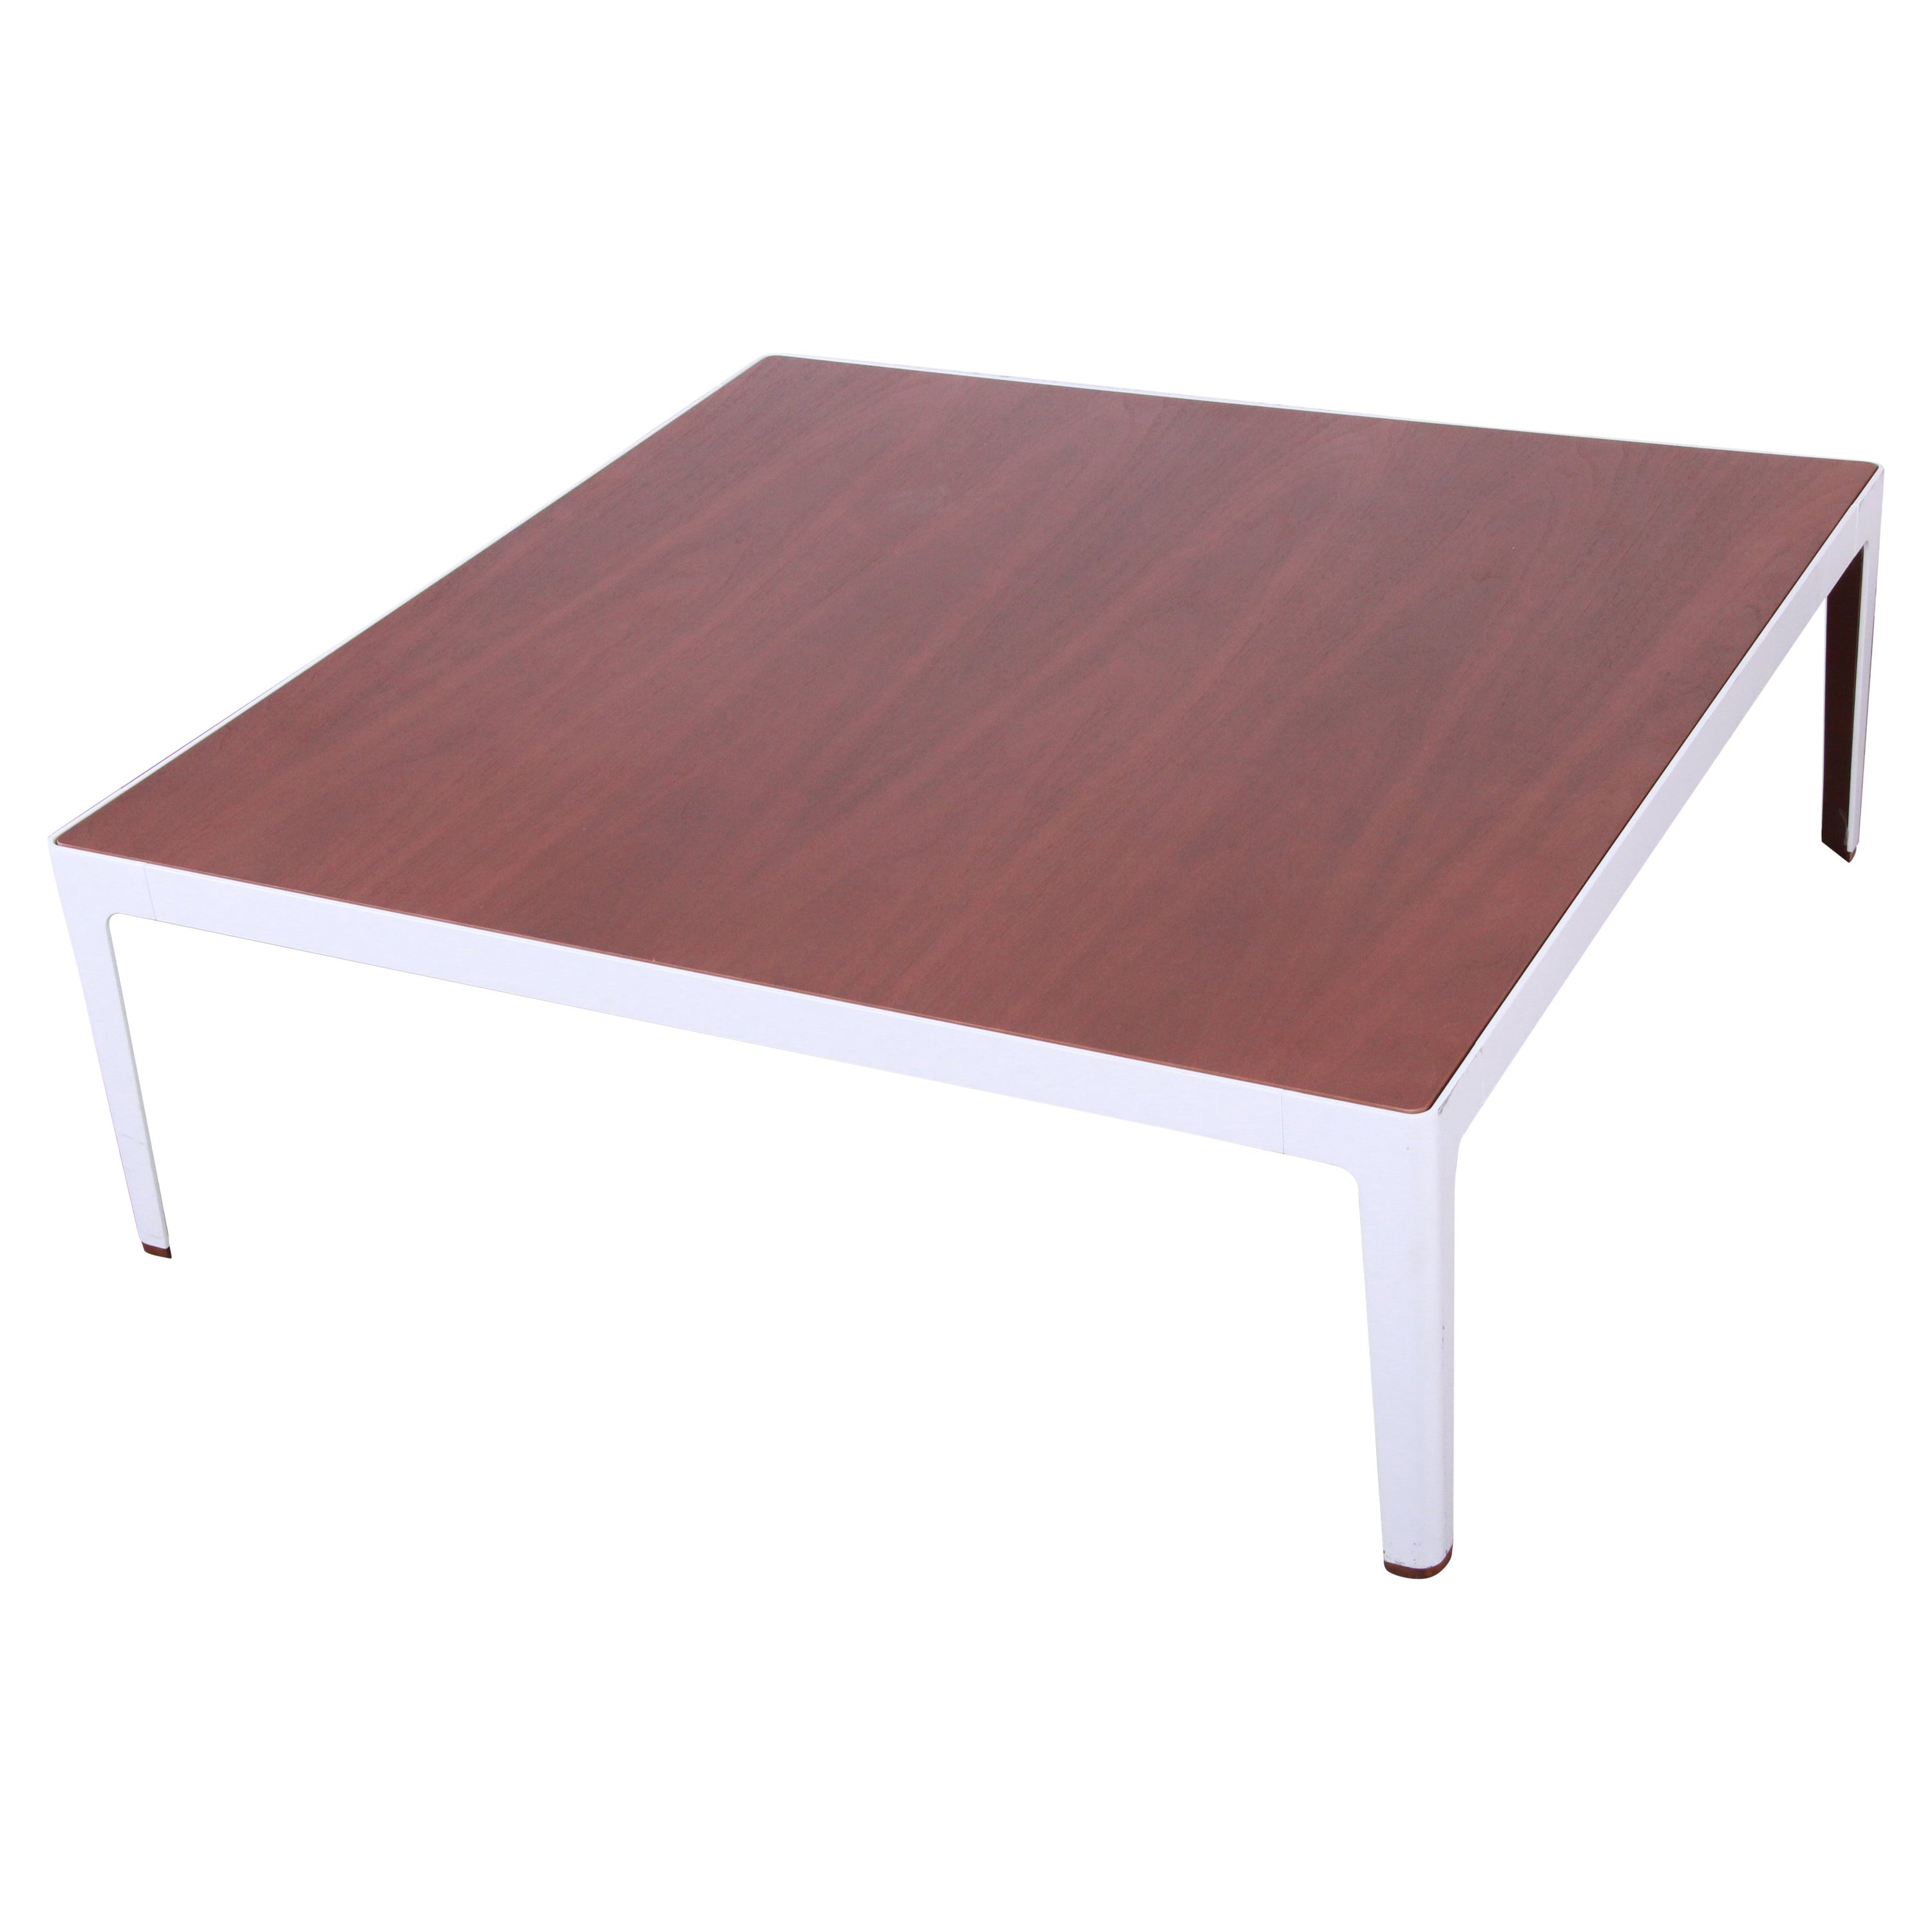 Mid-Century Modern Style Large Square Walnut Coffee Table by Coalesse